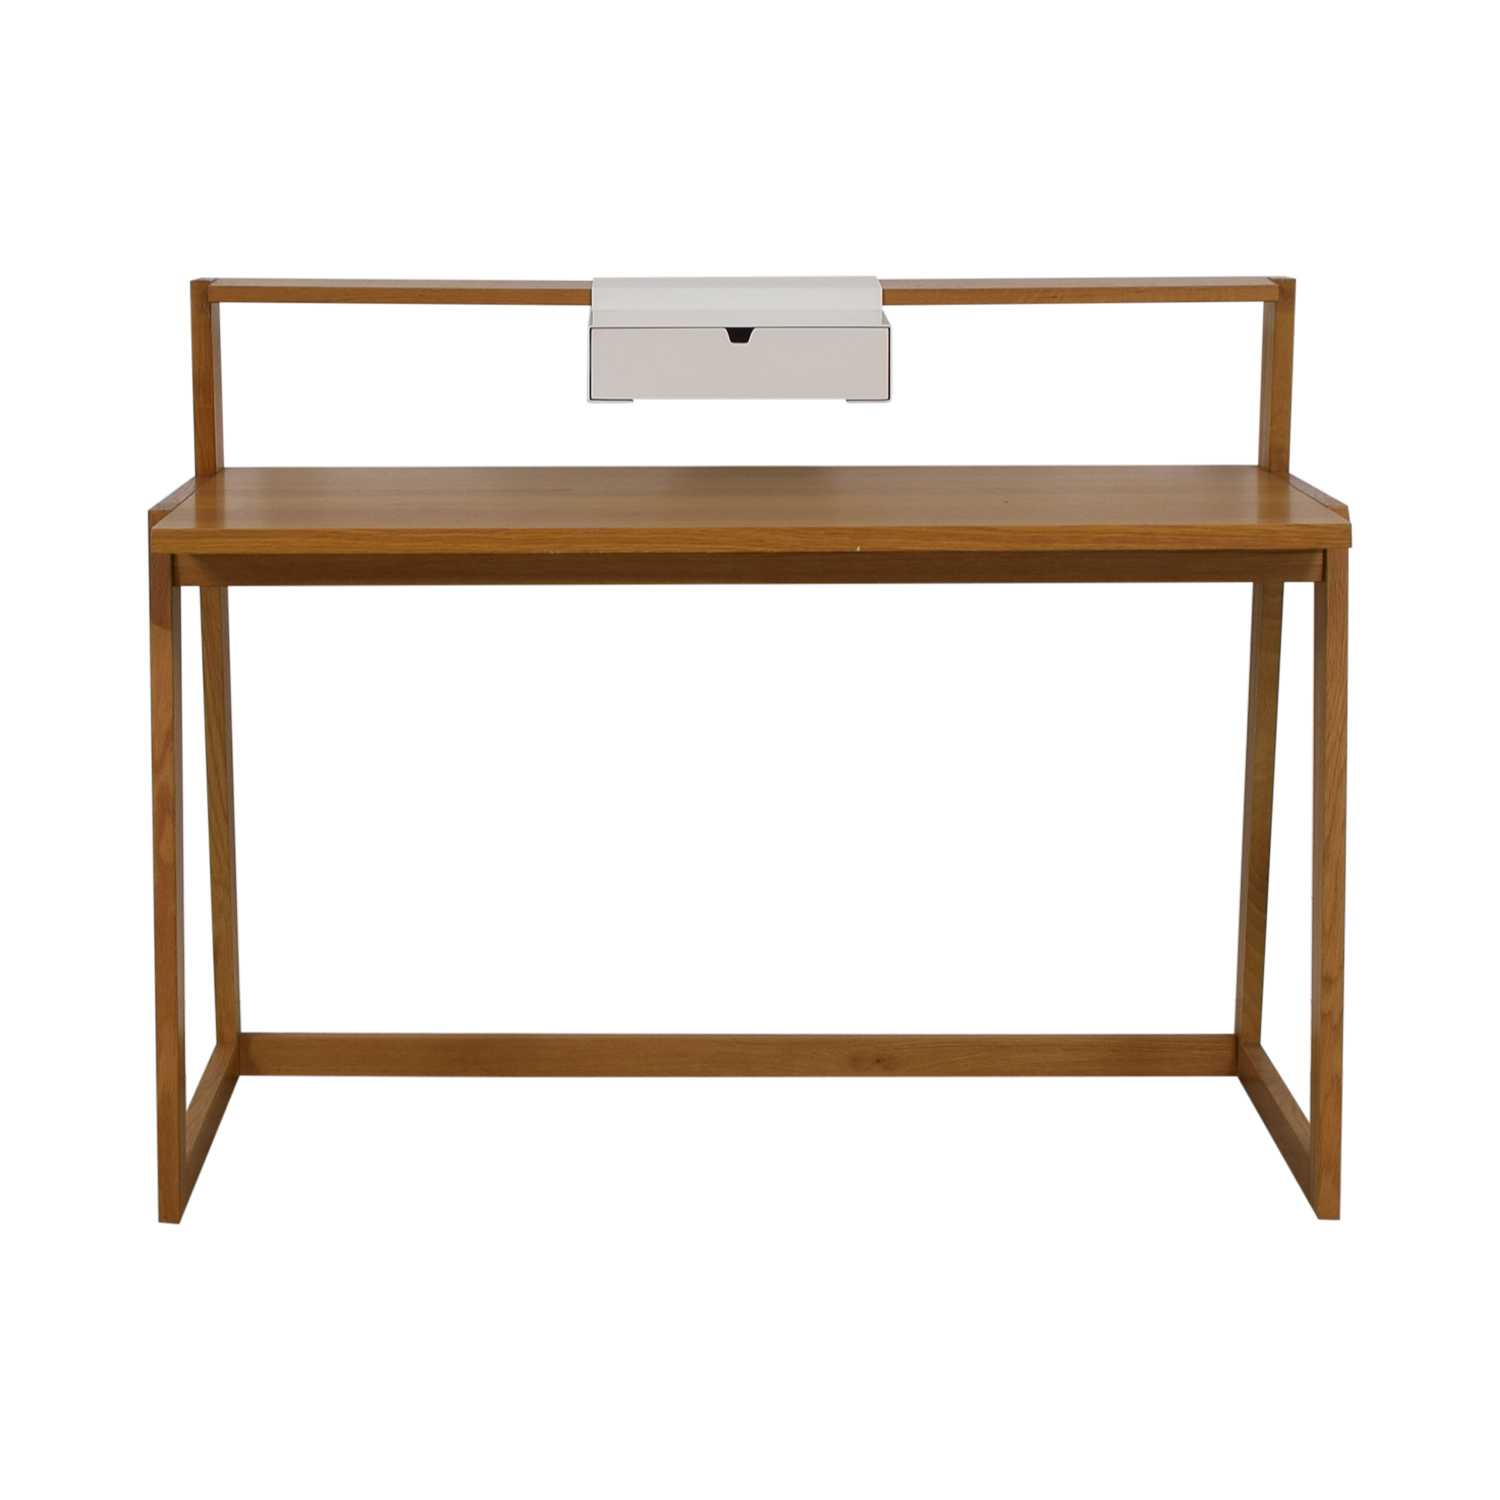 CB2 CB2 Wood Desk beige